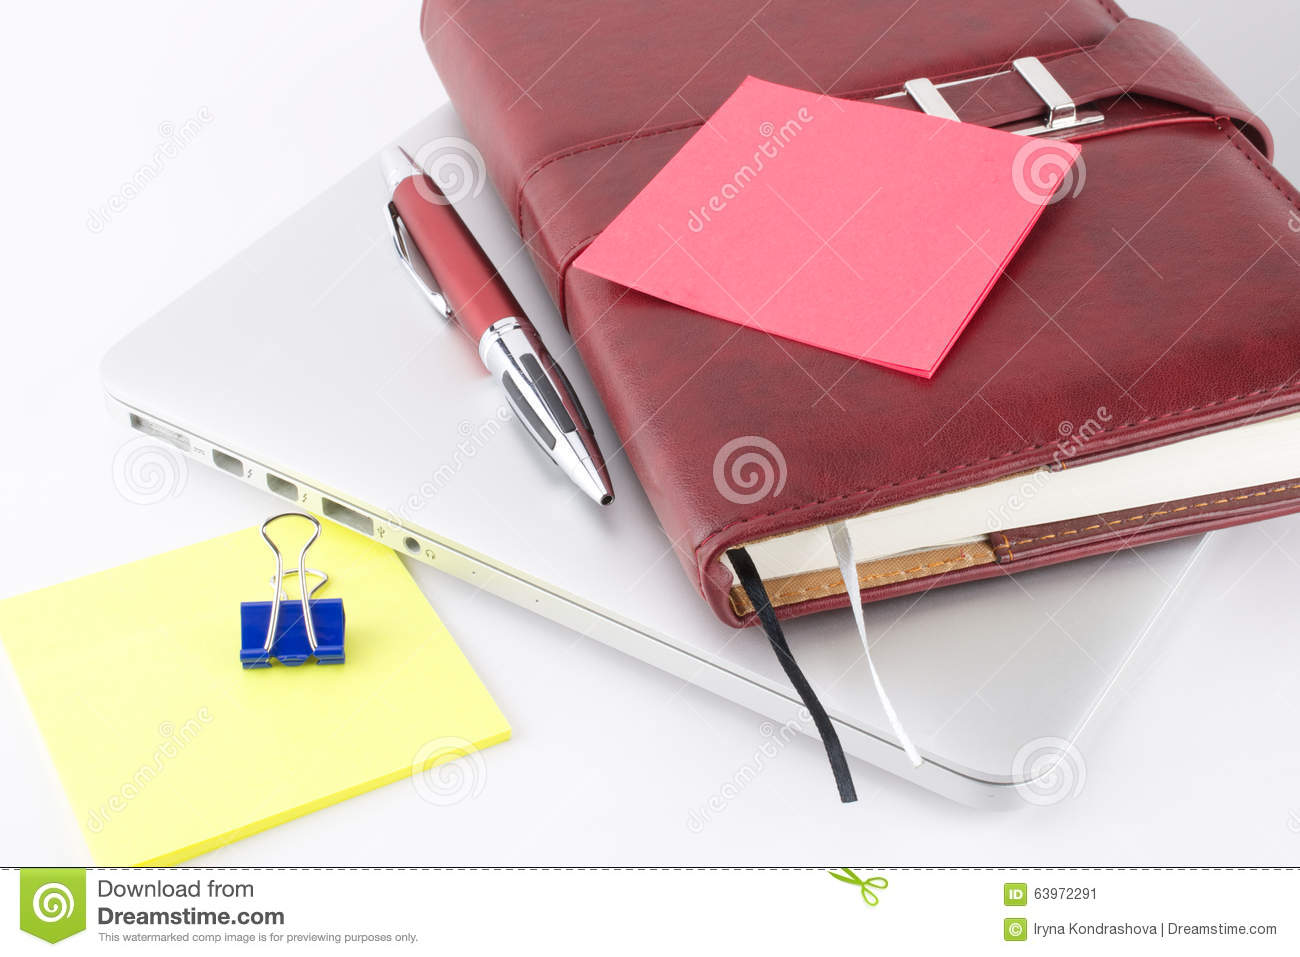 Notebook and other things